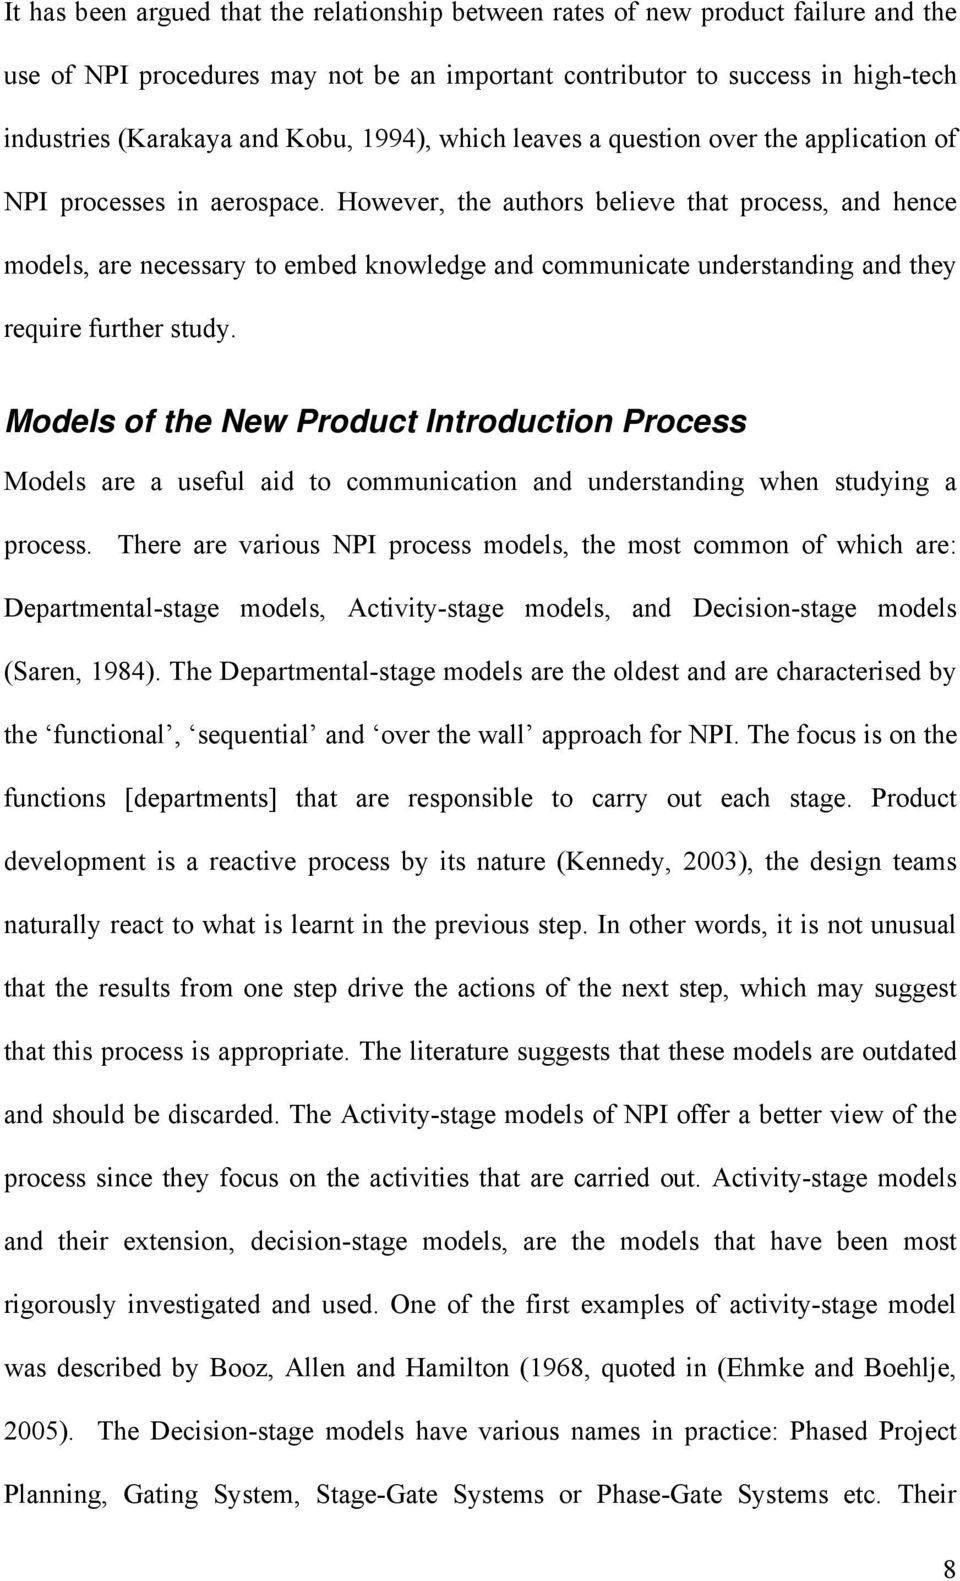 However, the authors believe that process, and hence models, are necessary to embed knowledge and communicate understanding and they require further study.